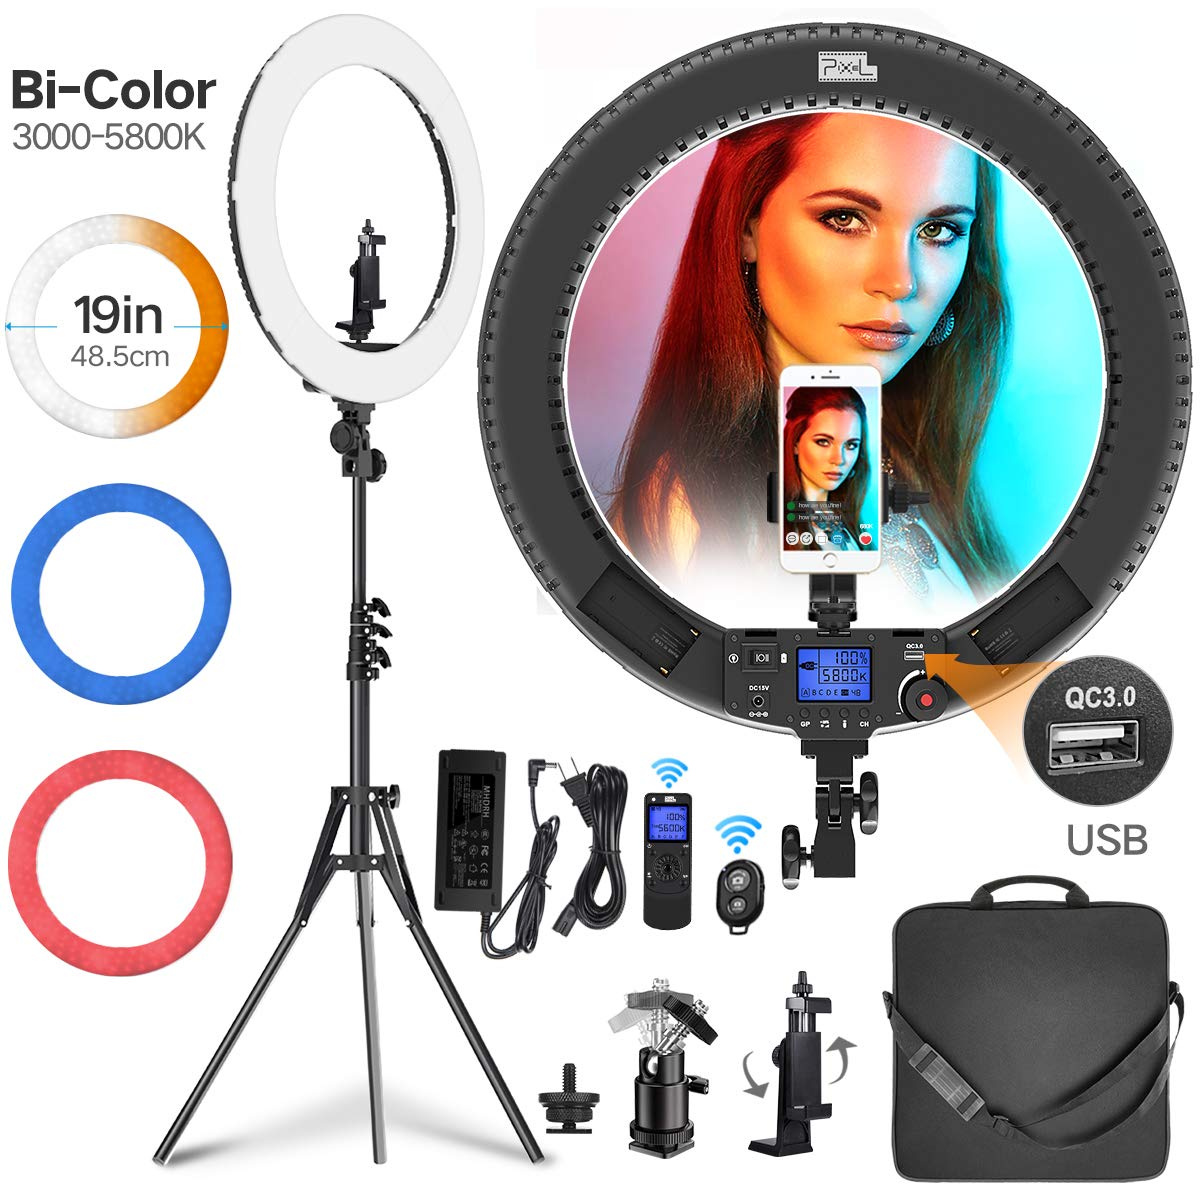 Ring Light, Pixel 19'' Bi-Color Ring Light with Stand and Wireless Remote, 60W 3000-5800K CRI≥97 Light Ring with 3 Color Filters (Red/Blue/White) for Vlogging Portrait Makeup Video Shooting by PIXEL